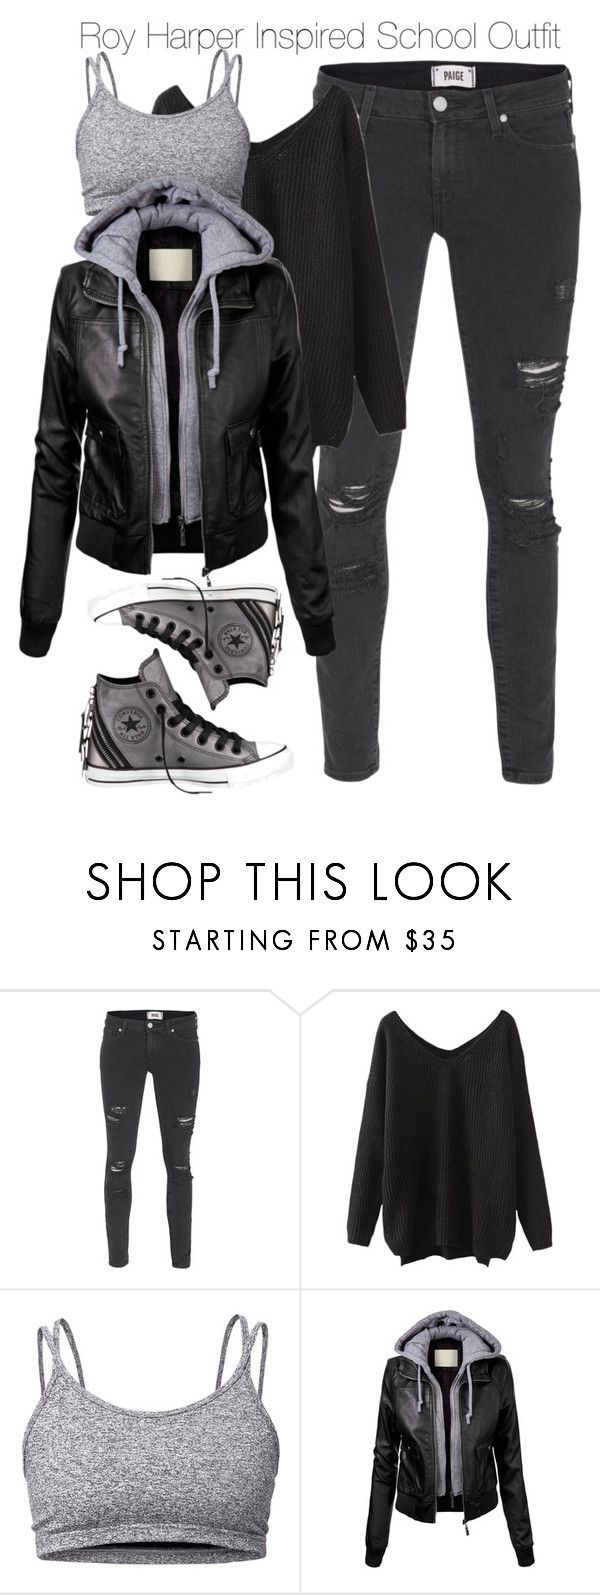 """Arrow - Roy Harper Inspired School Outfit"" by staystronng ❤️ liked on Polyvore featuring Paige Denim, Lija, Converse, school, Arrow and royharper"